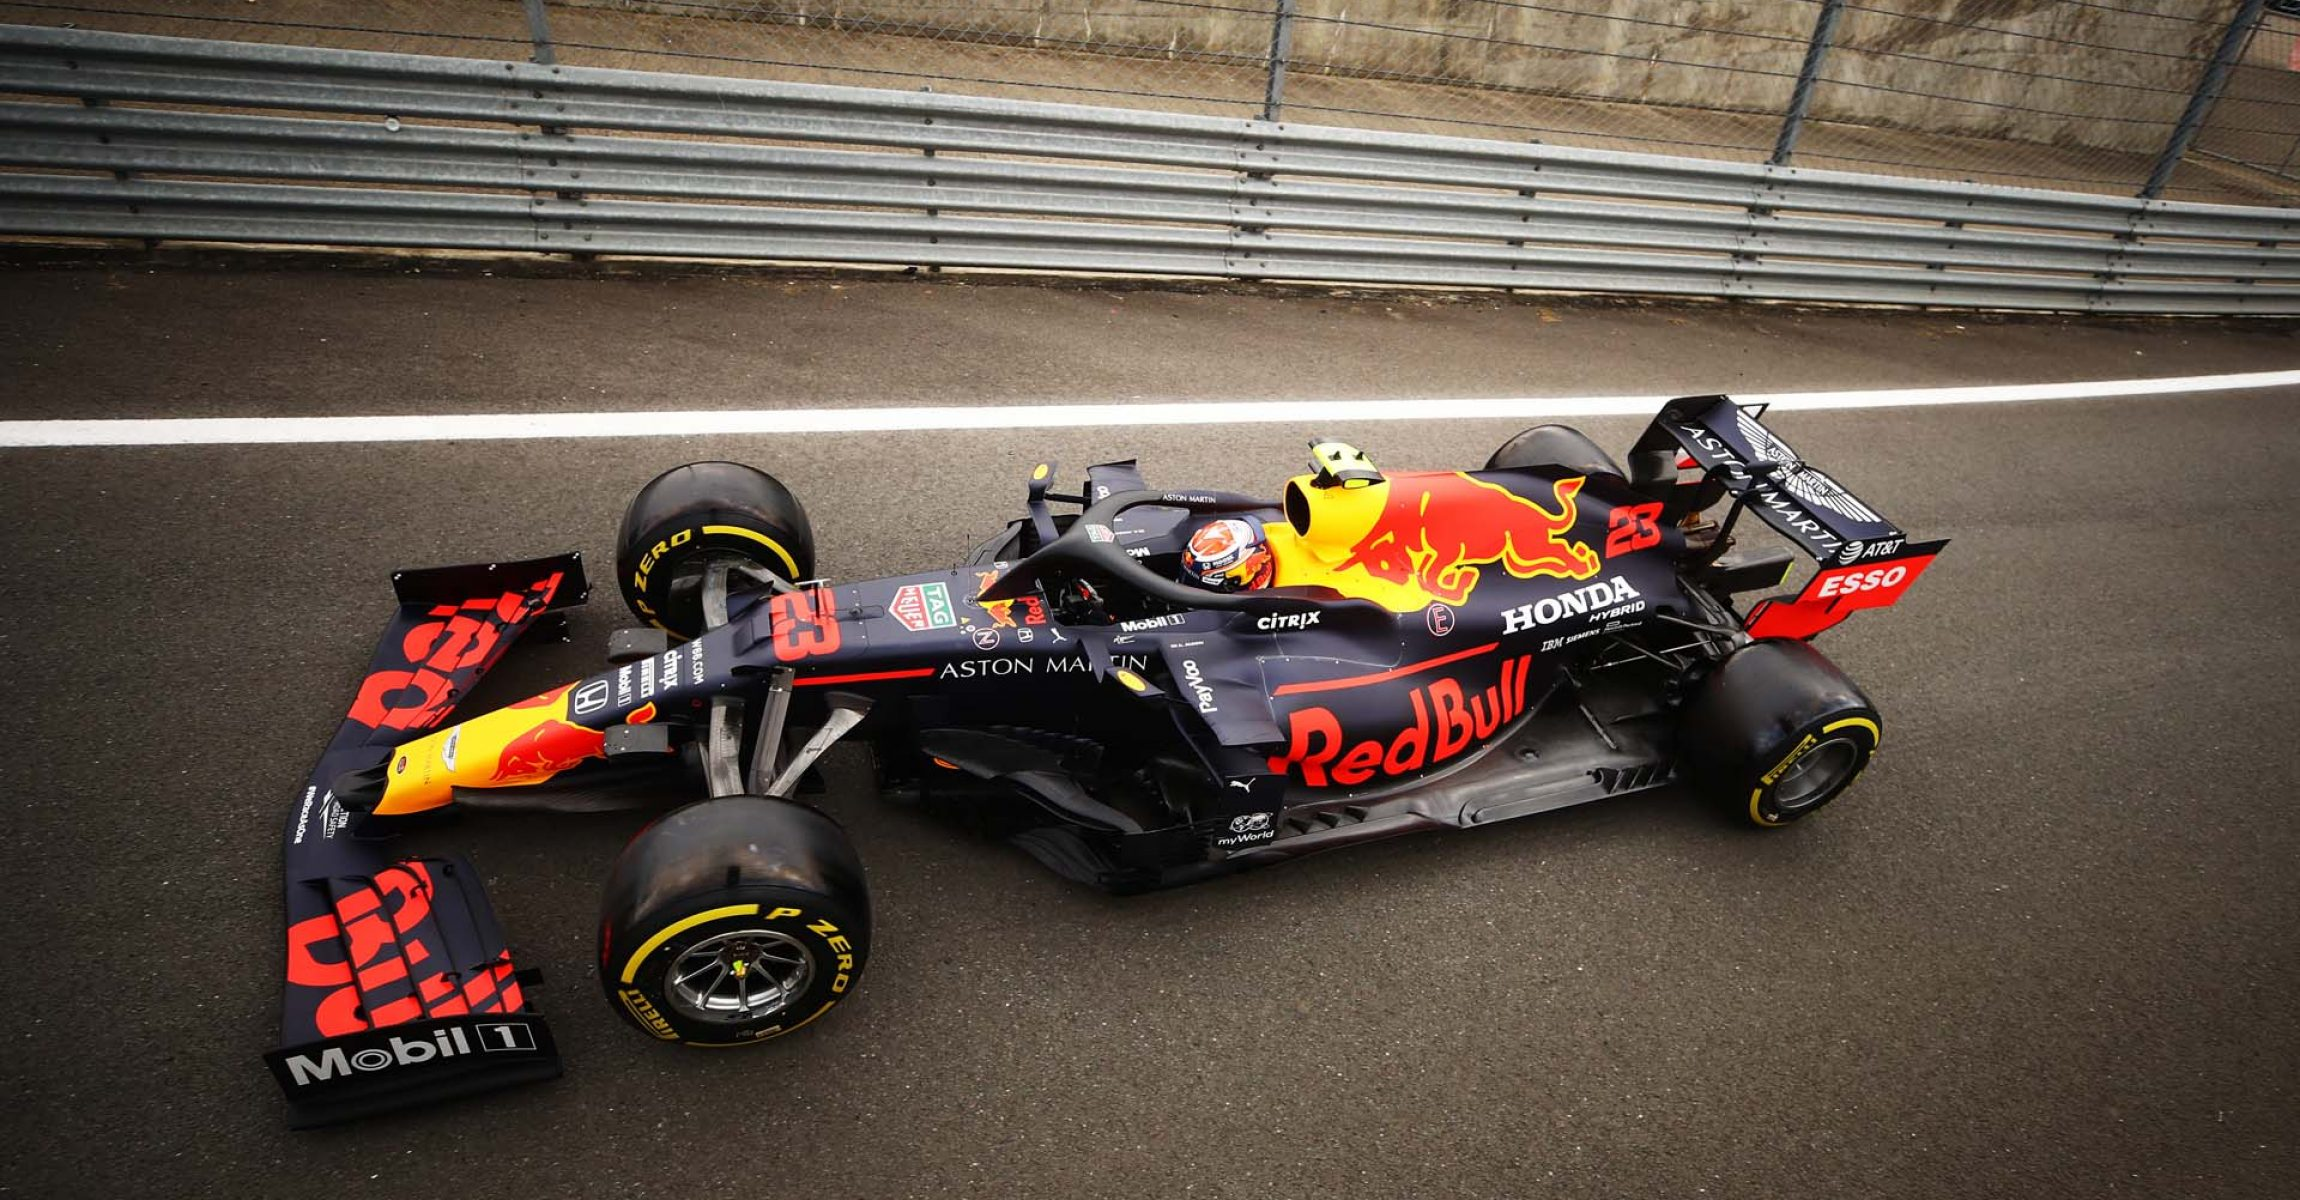 NORTHAMPTON, ENGLAND - AUGUST 07: Alexander Albon driving Aston Martin Red Bull Racing RB16 leaves the pit lane during practice for the F1 70th Anniversary Grand Prix at Silverstone on August 07, 2020 in Northampton, England. (Photo by Bryn Lennon/Getty Images)